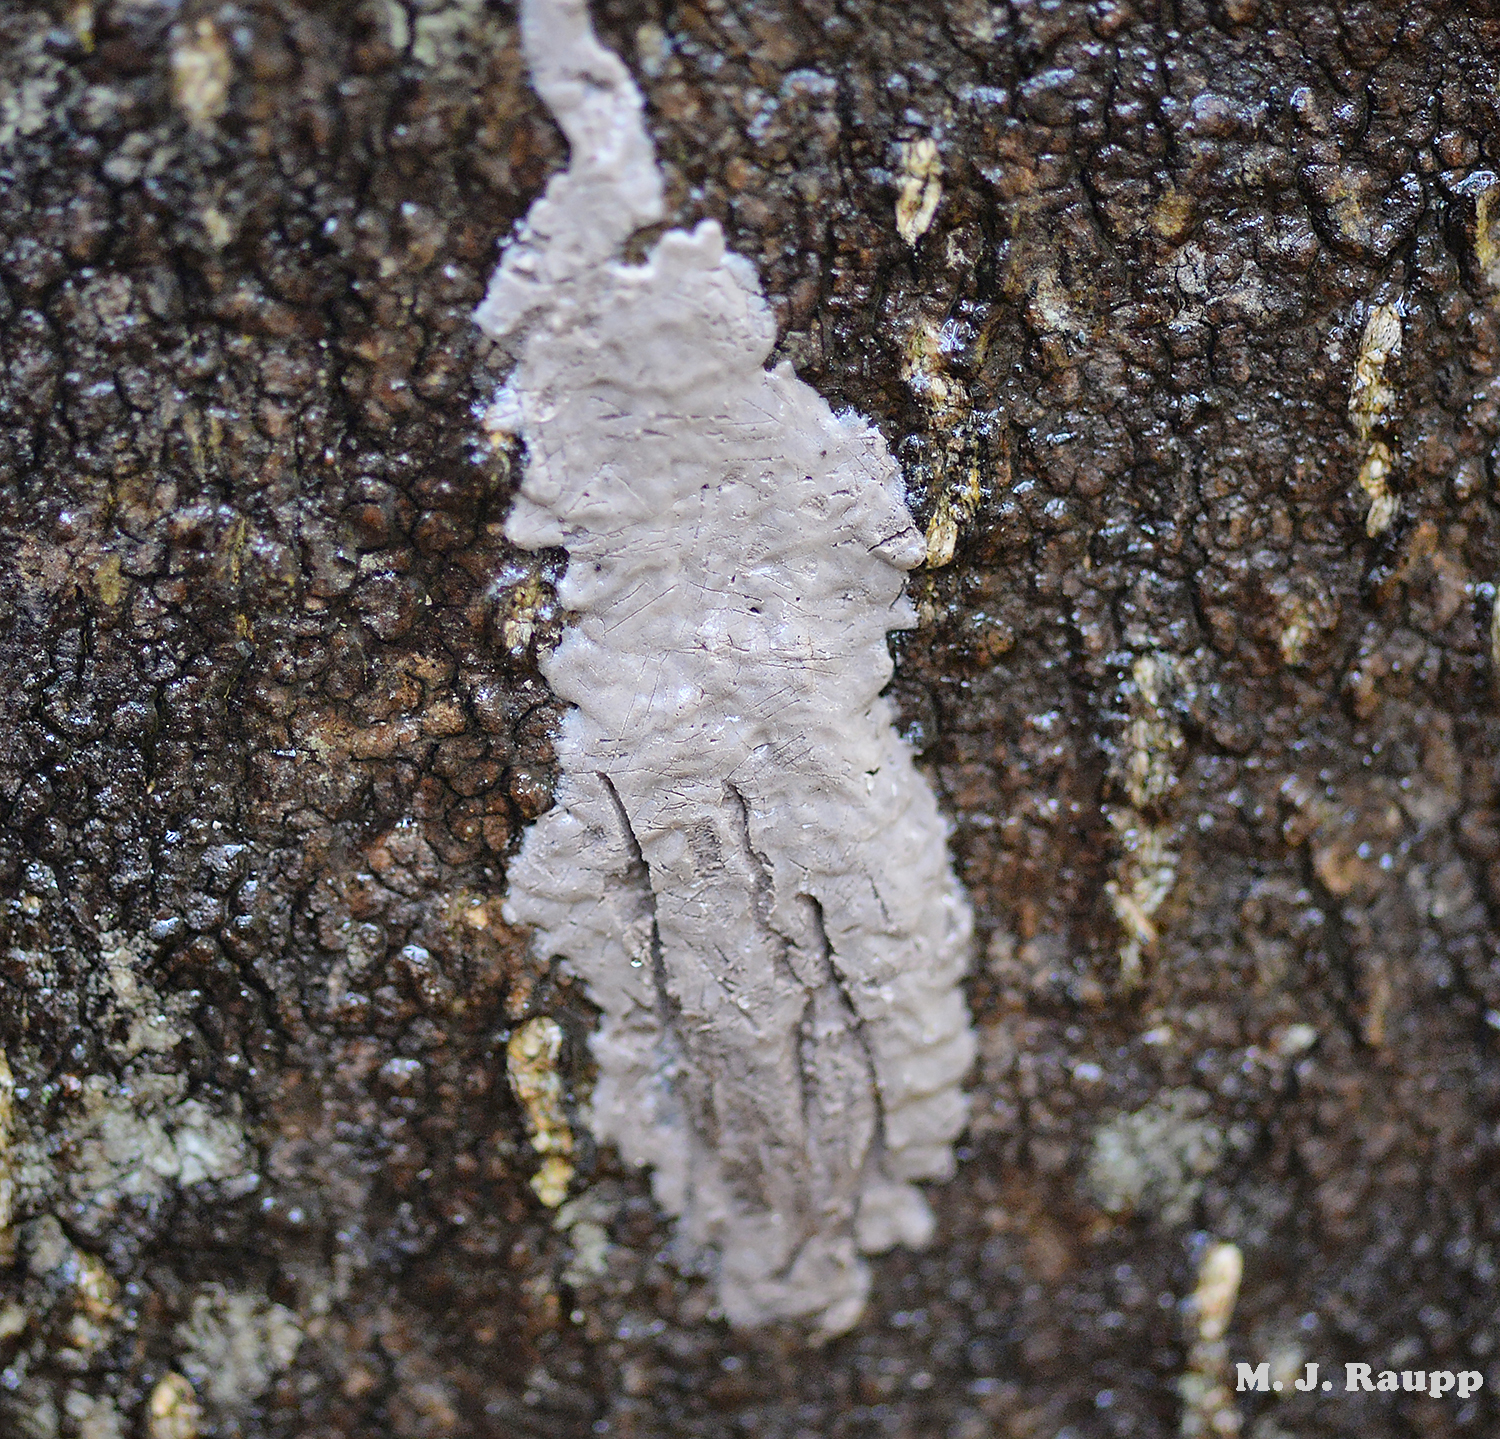 It's easy to see how the non-descript egg masses of the lanternfly like this one on the bole of a tree sneak past human detection and move about the world.